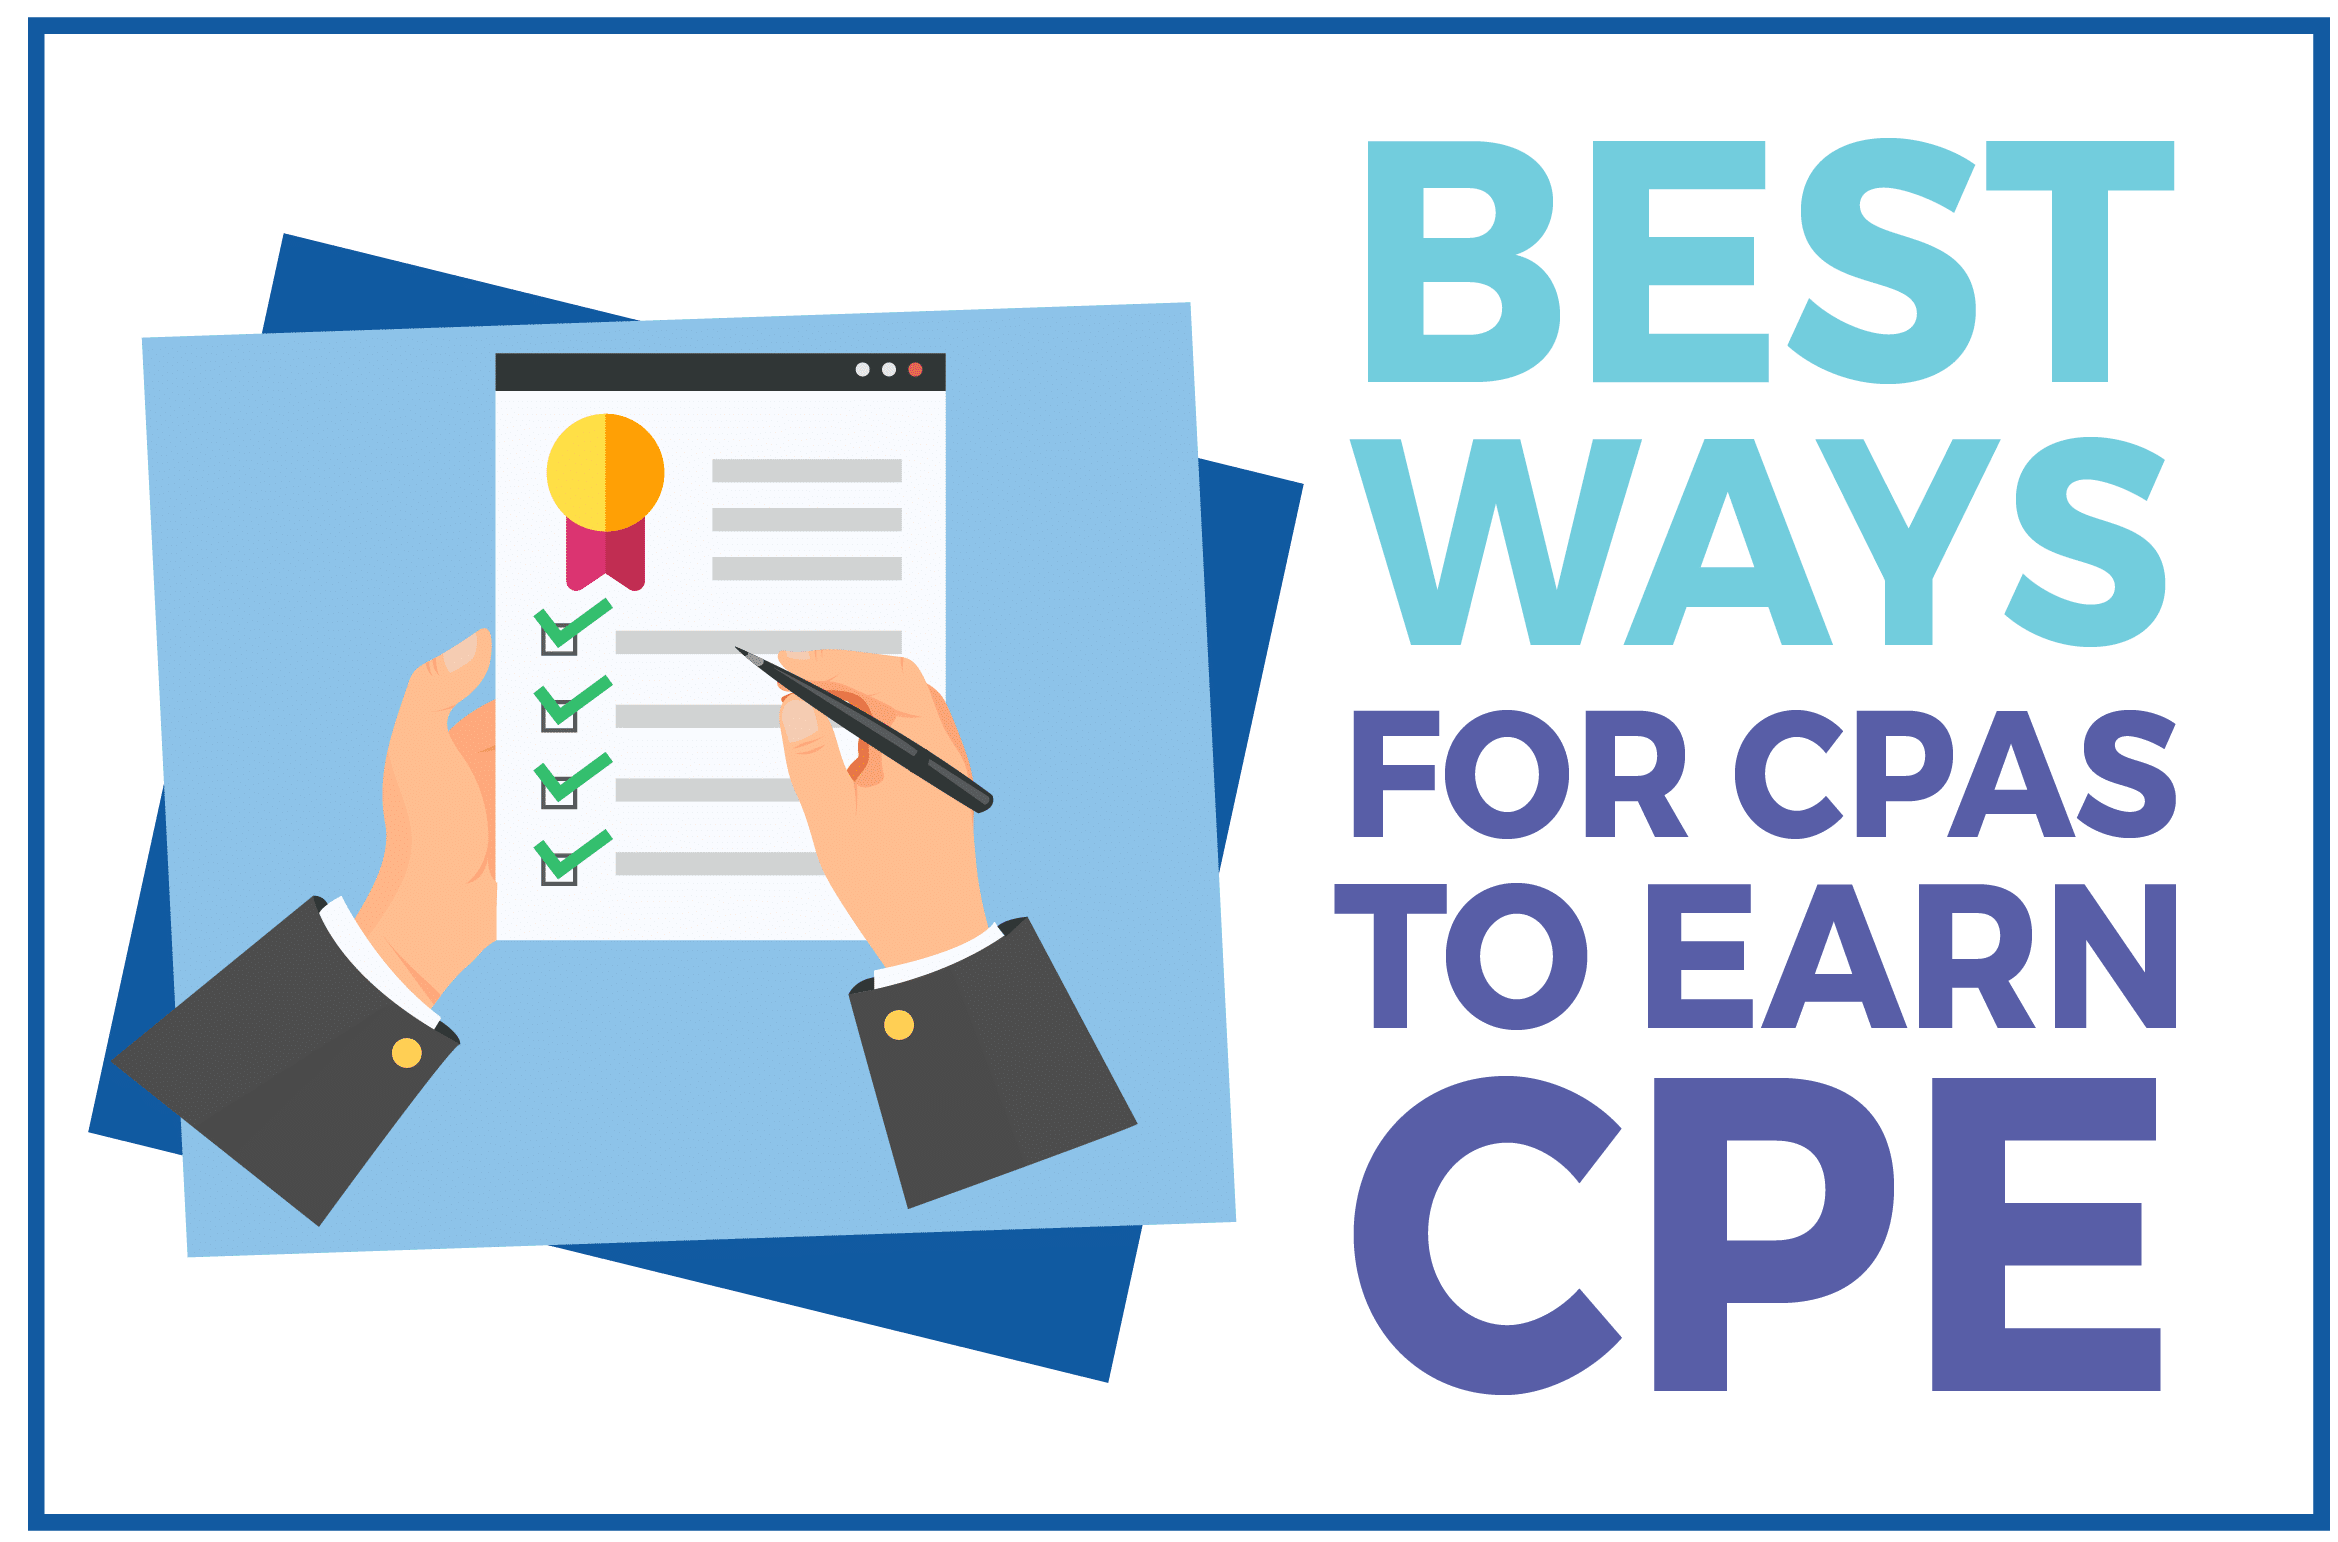 Best Ways for CPAs to Earn CPE